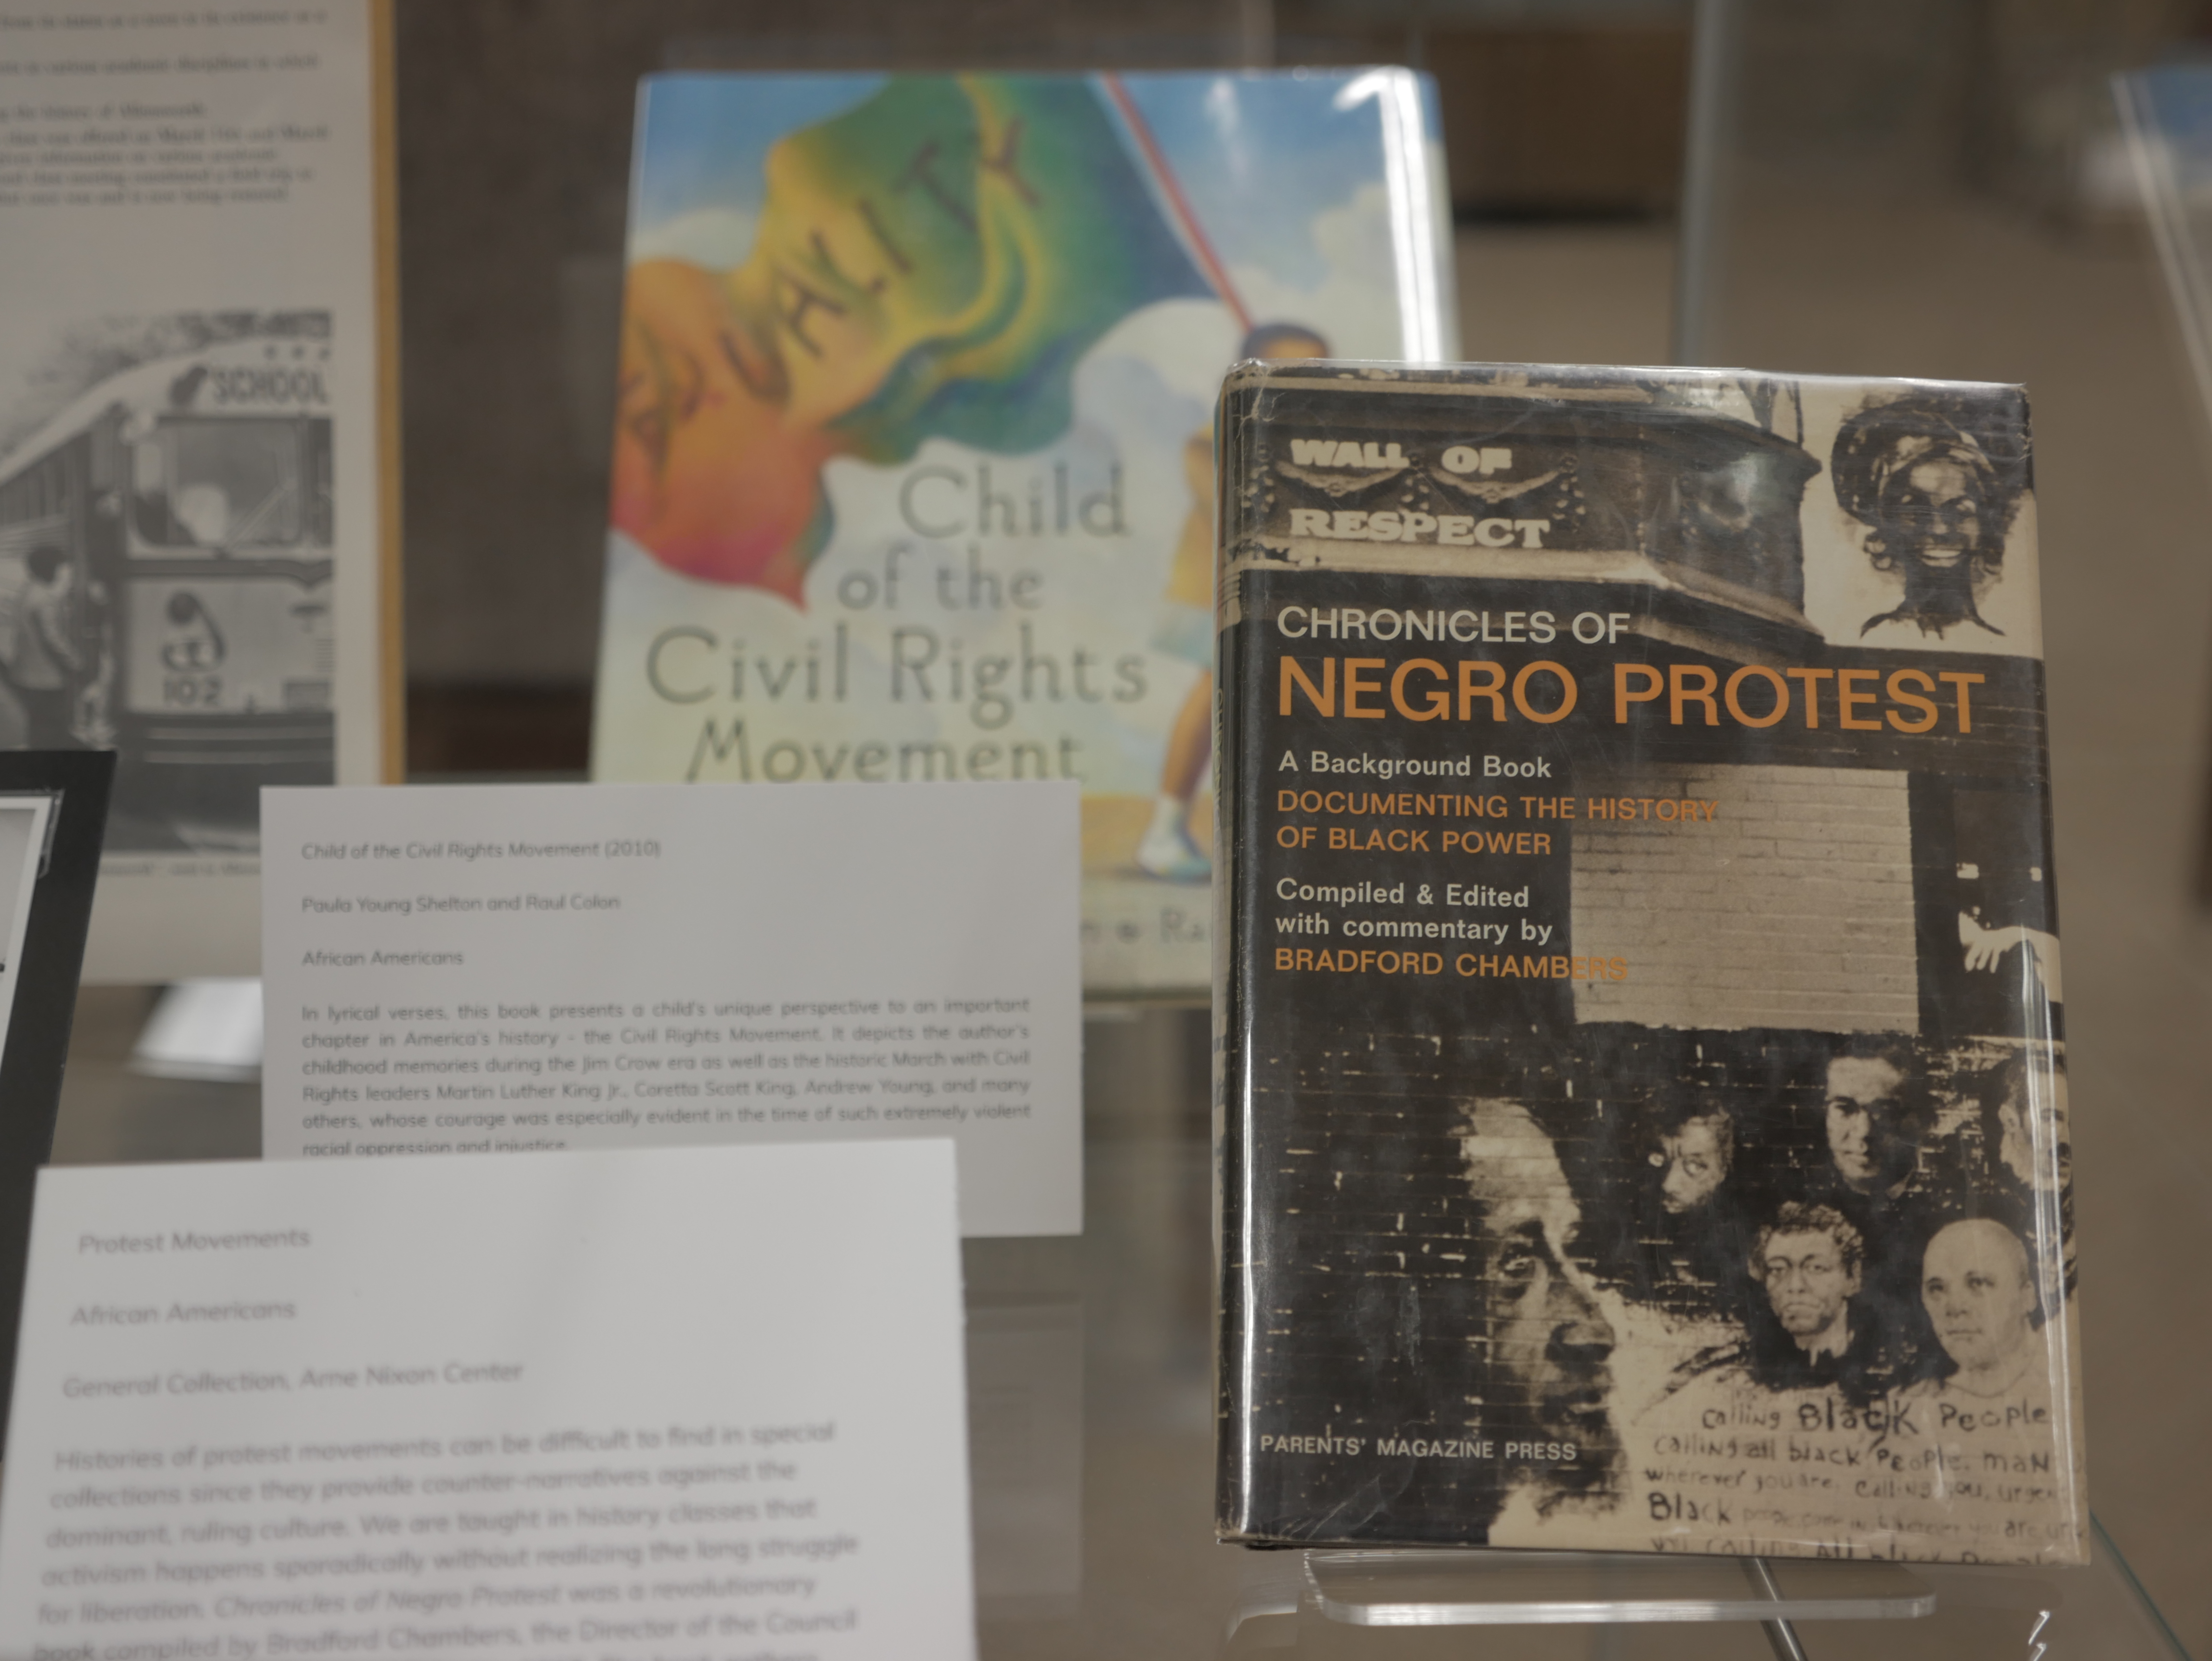 Chronicles of Negro Protest and Child of the Civil Rights Movement